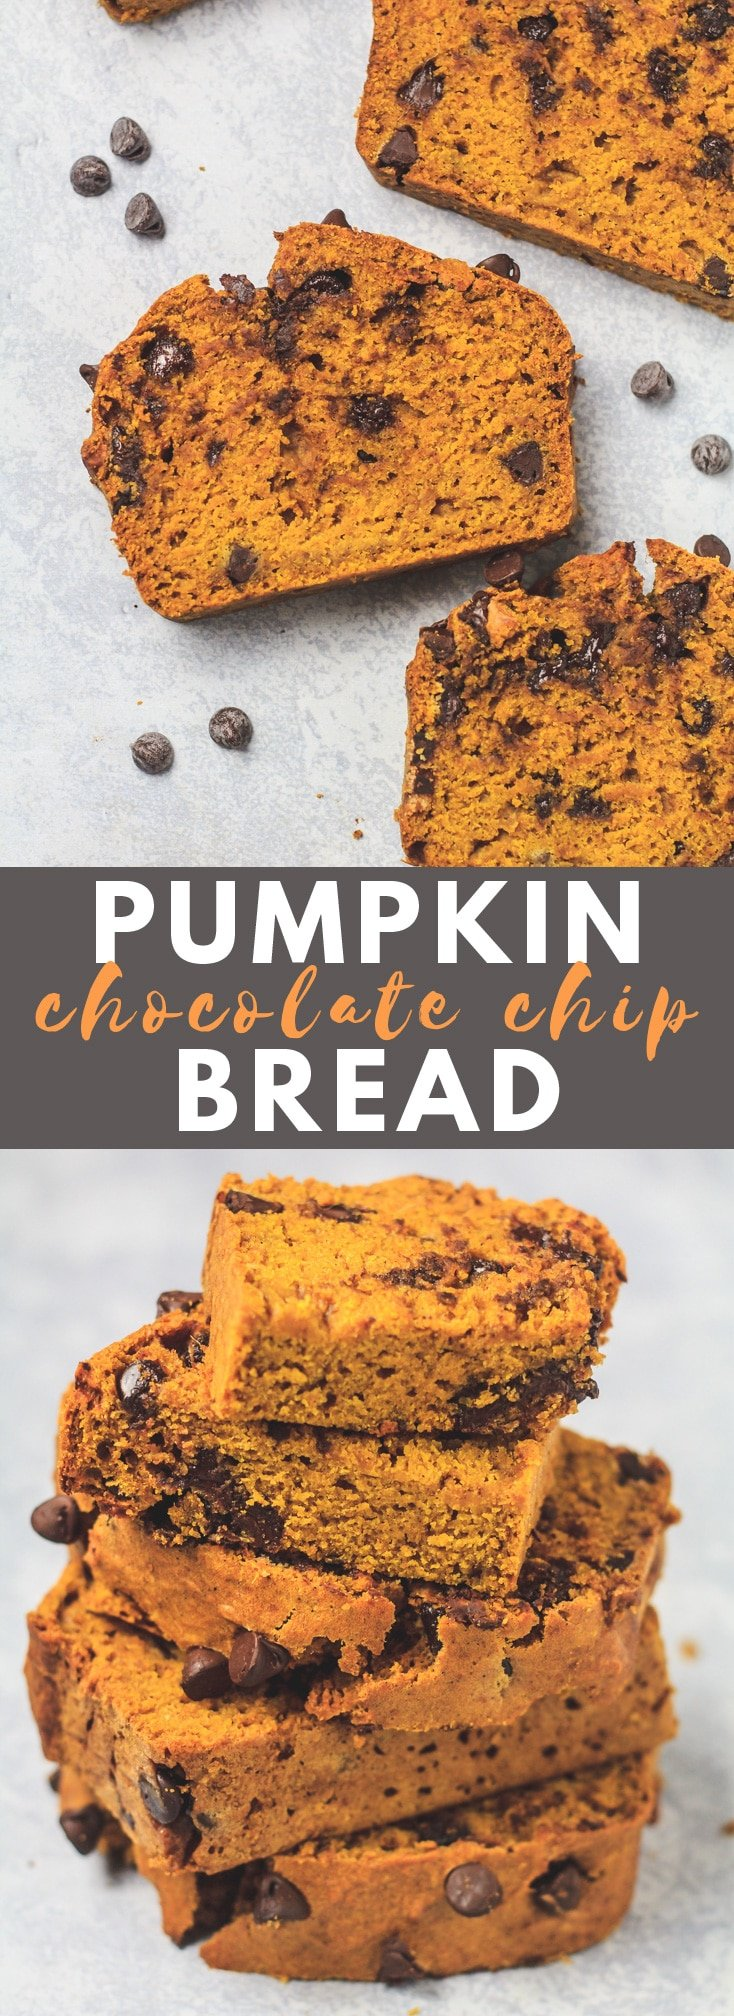 Pumpkin Chocolate Chip Bread - Incredibly moist pumpkin bread that is perfectly spiced, LOADED with pumpkin puree, and stuffed full of chocolate chips. This is the BEST chocolate chip pumpkin bread! #pumpkinbread #fallrecipes